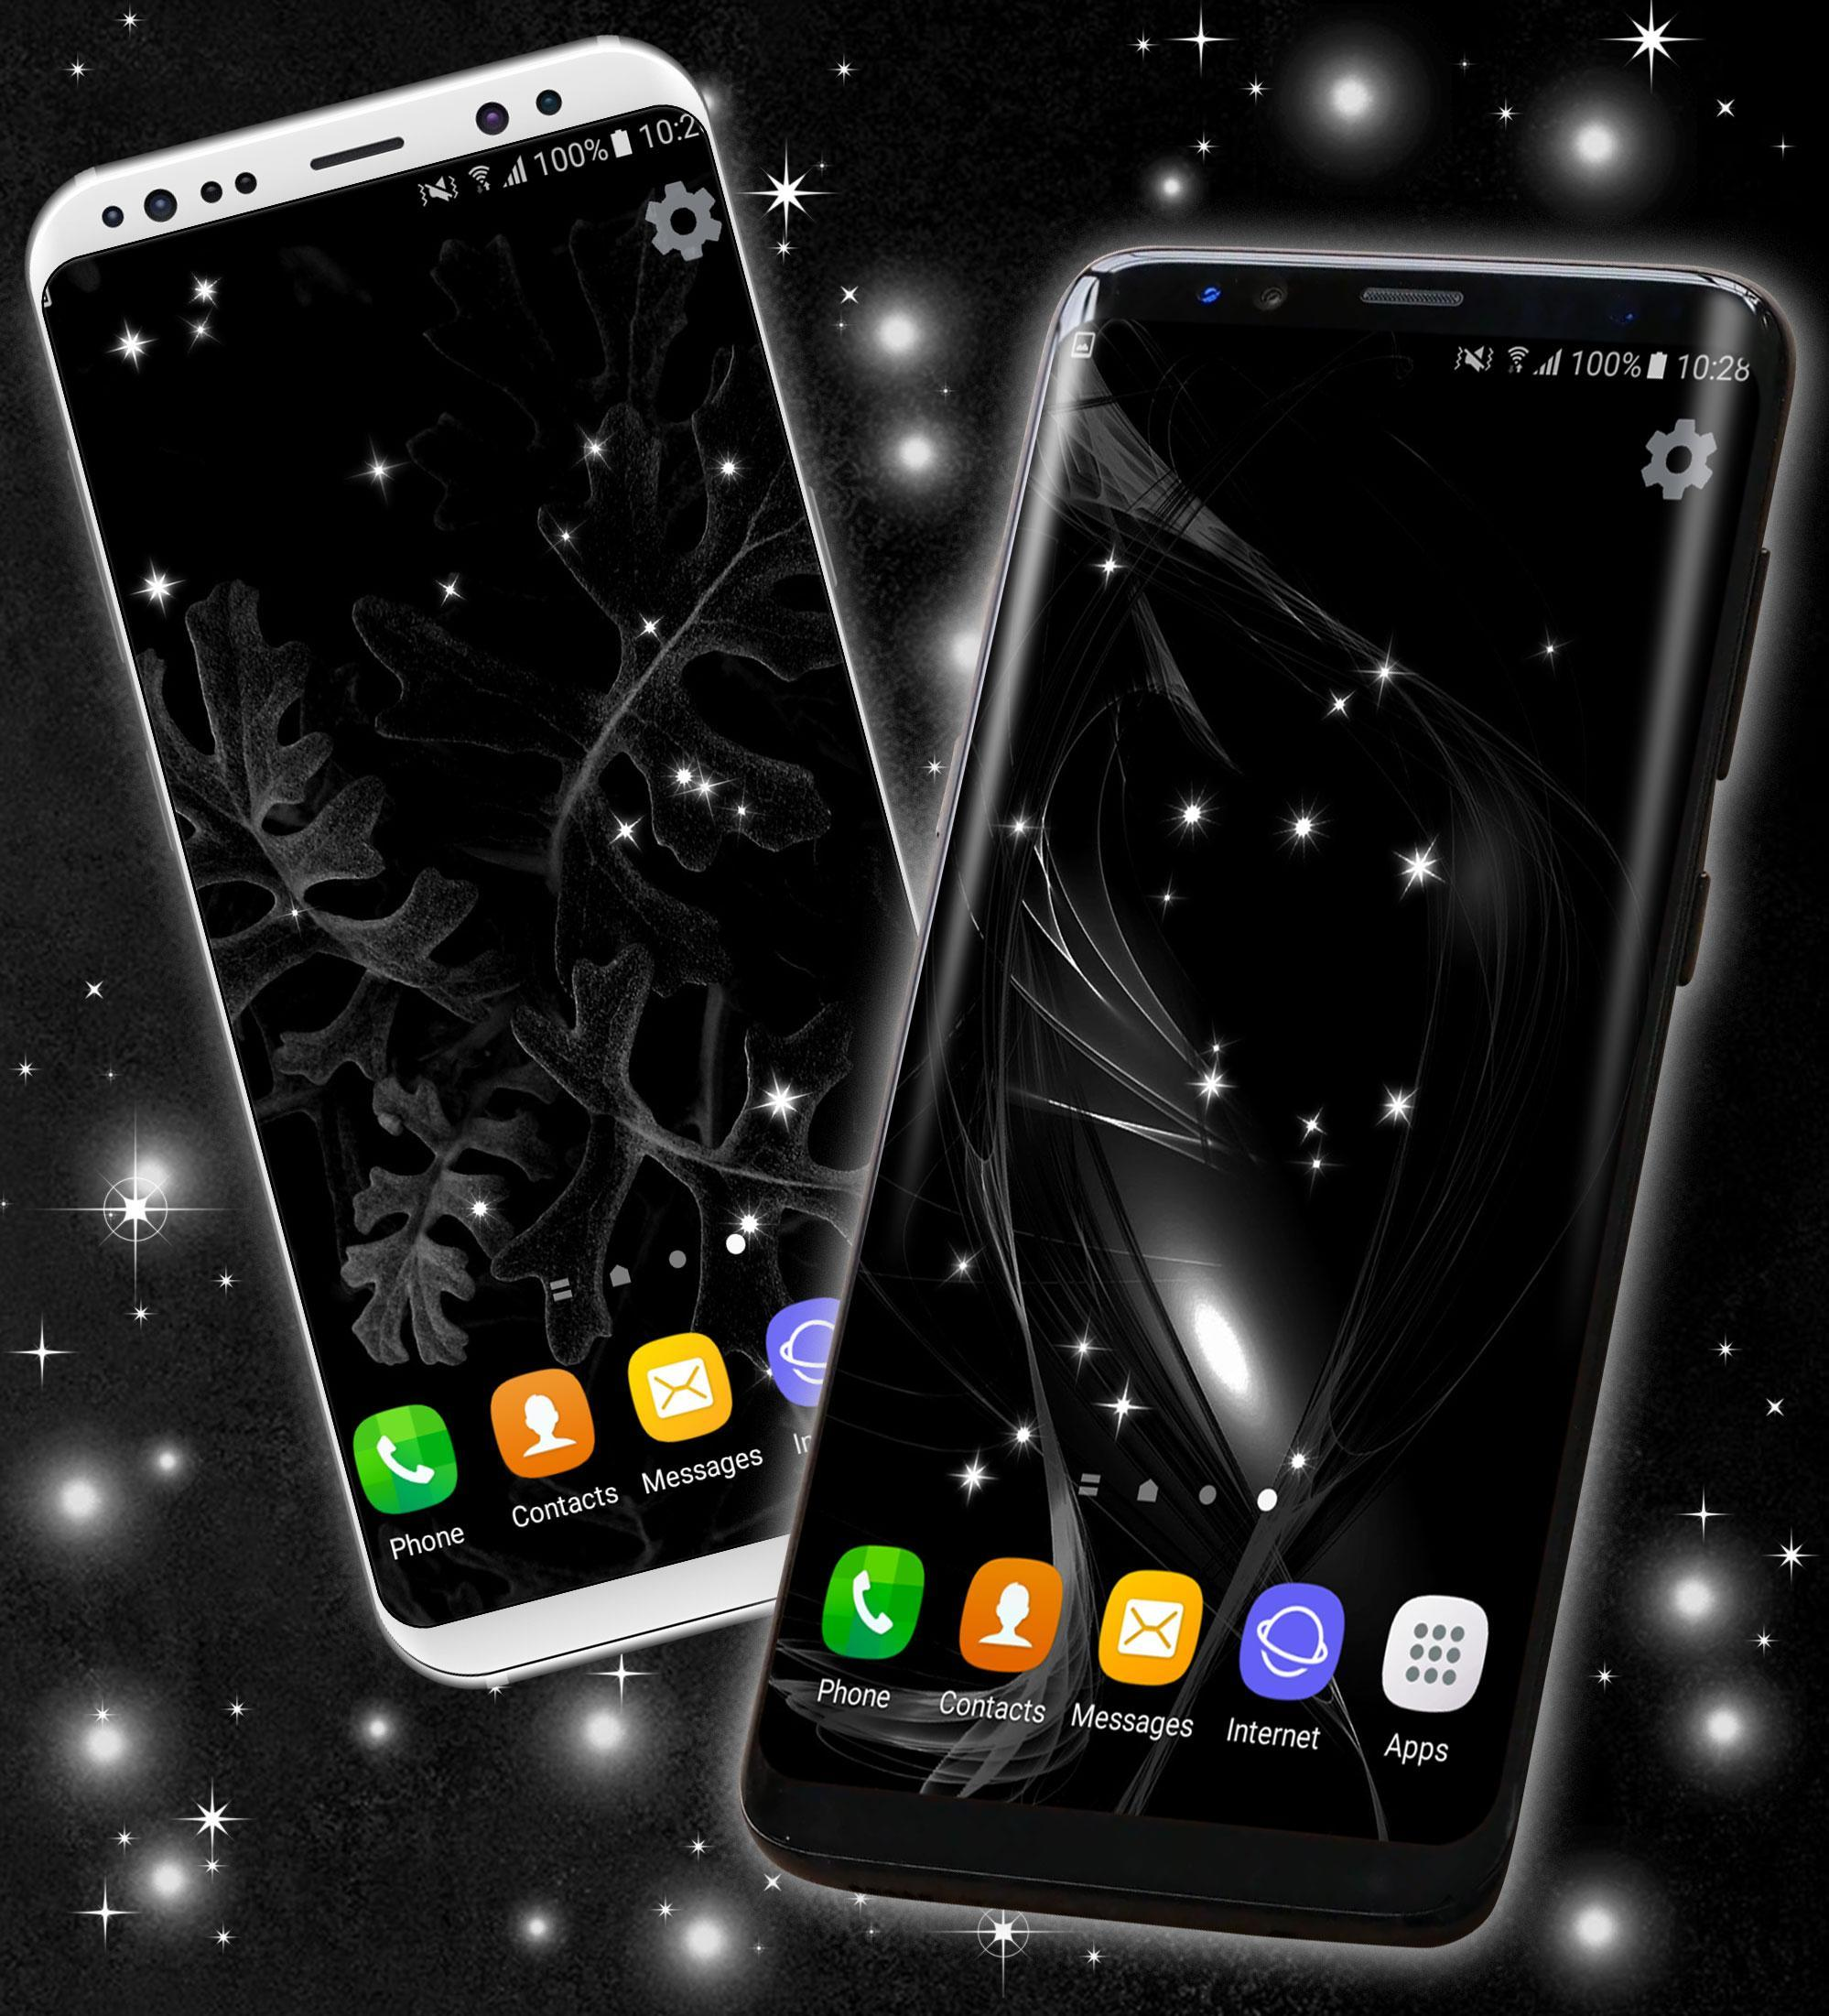 black live wallpaper for android apk download black live wallpaper for android apk